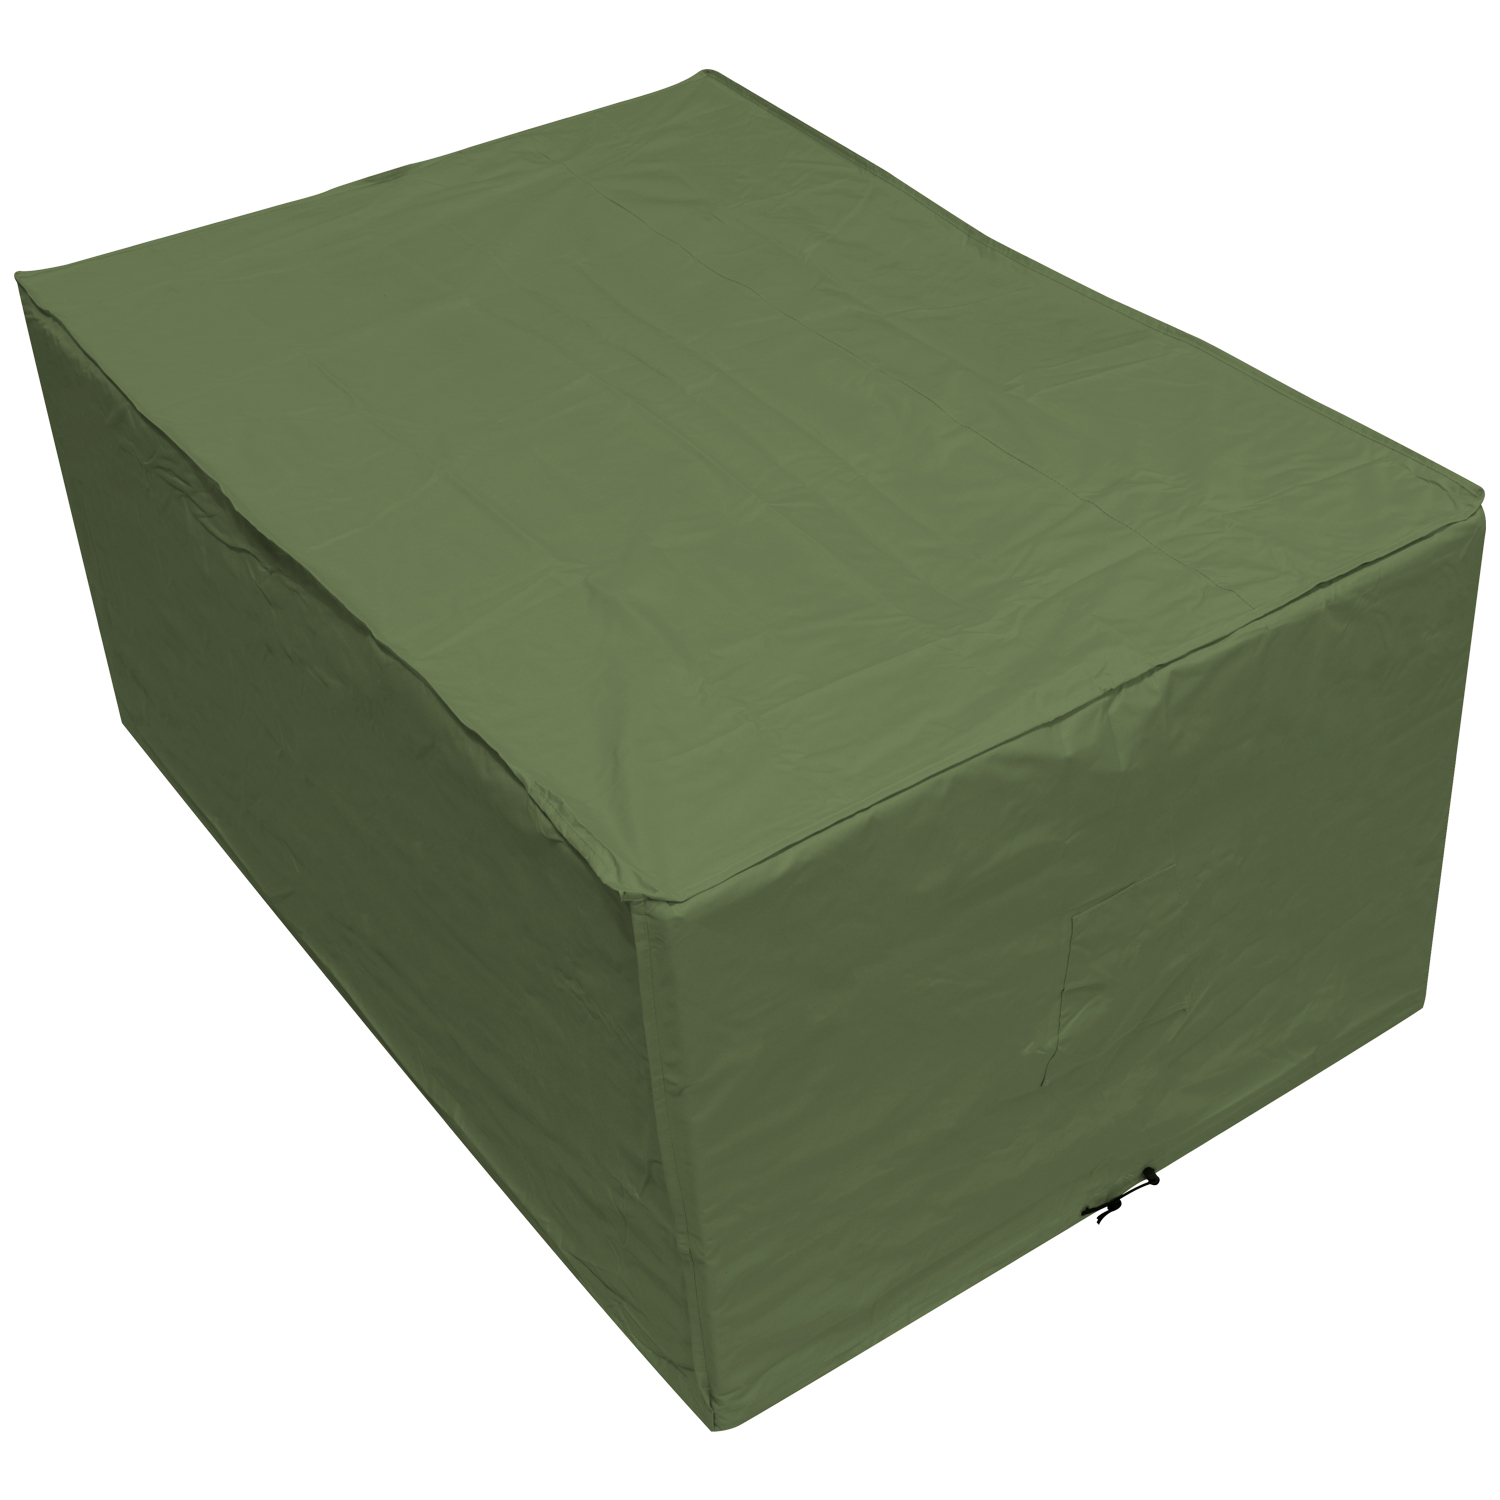 Oxbridge small table cover green covers outdoor value for Oxbridge outdoor furniture covers